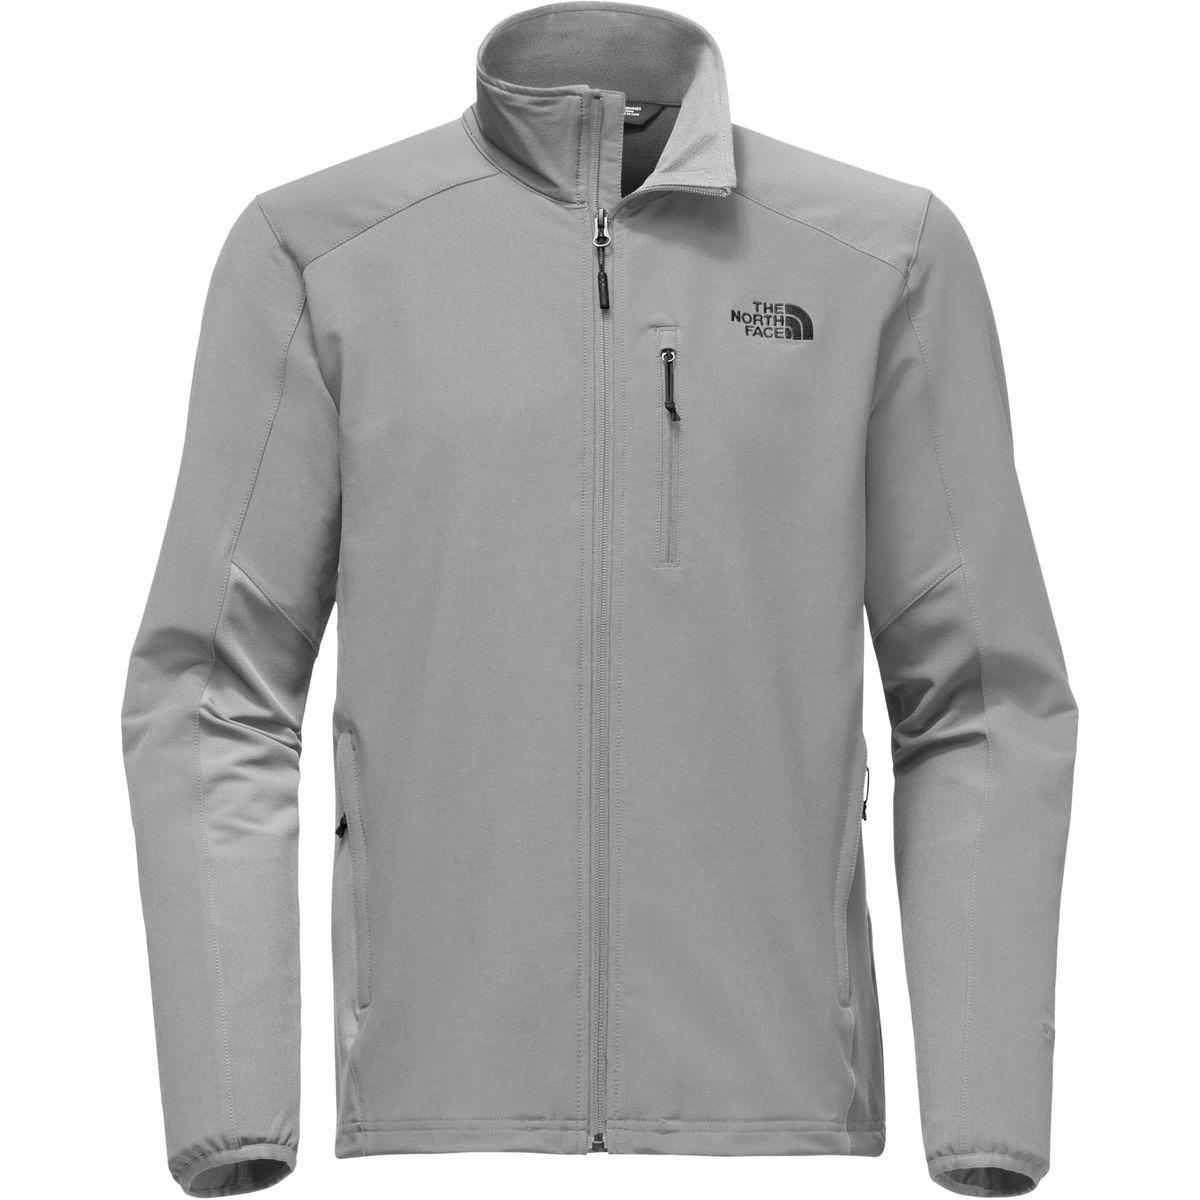 The North Face Apex Pneumatic Softshell Jacket - Men